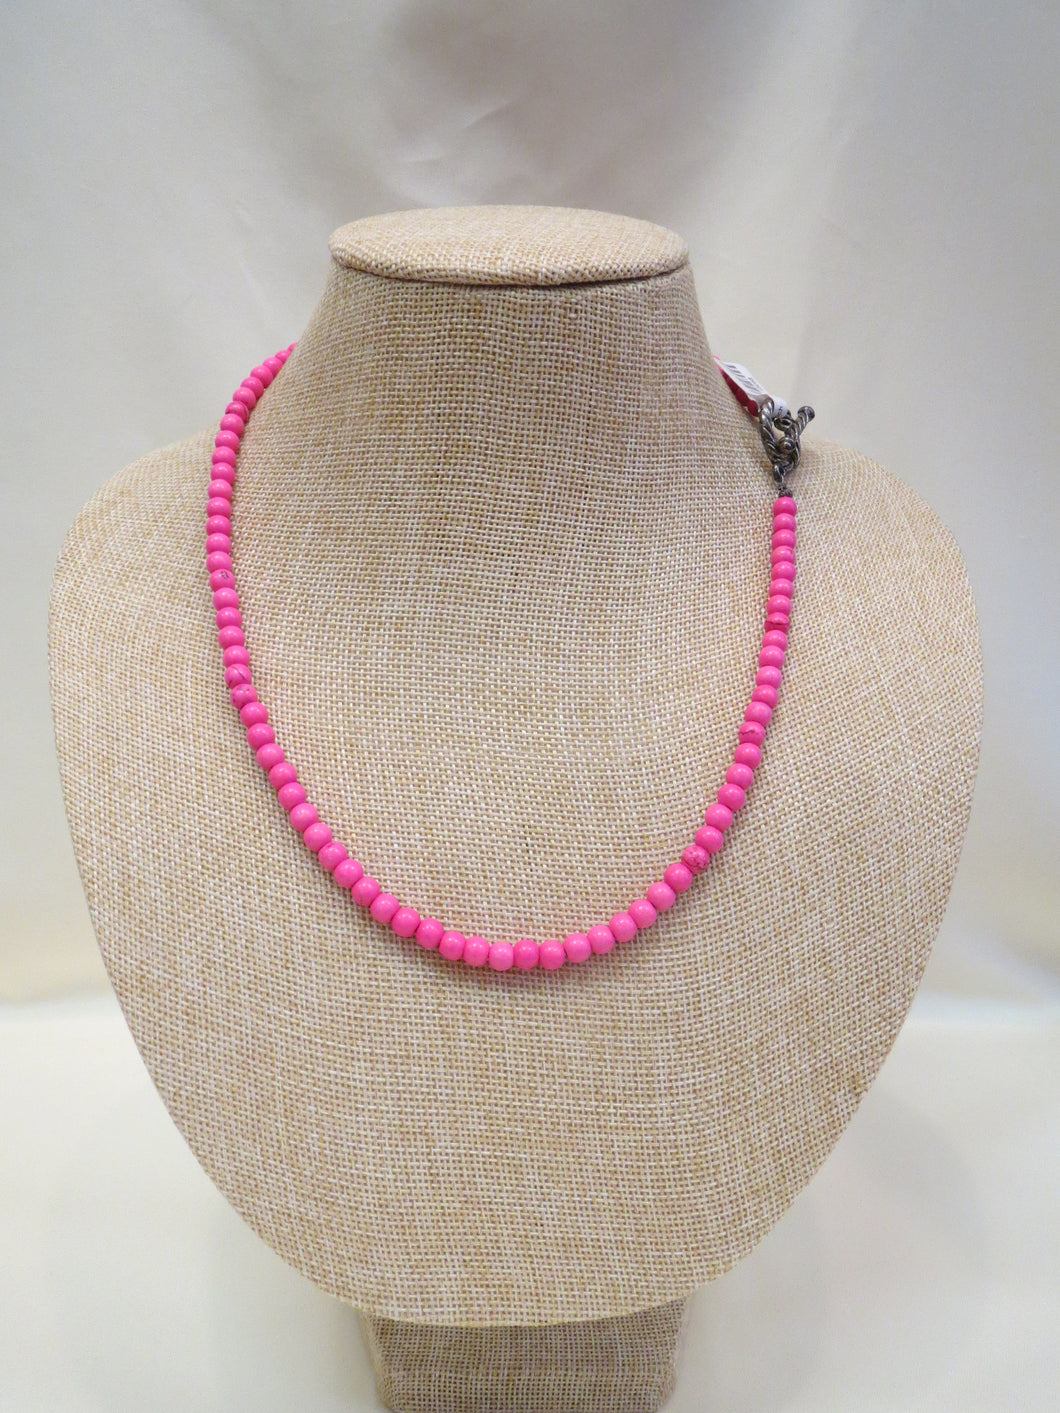 ADO Pink Beaded Necklace | All Dec'd Out